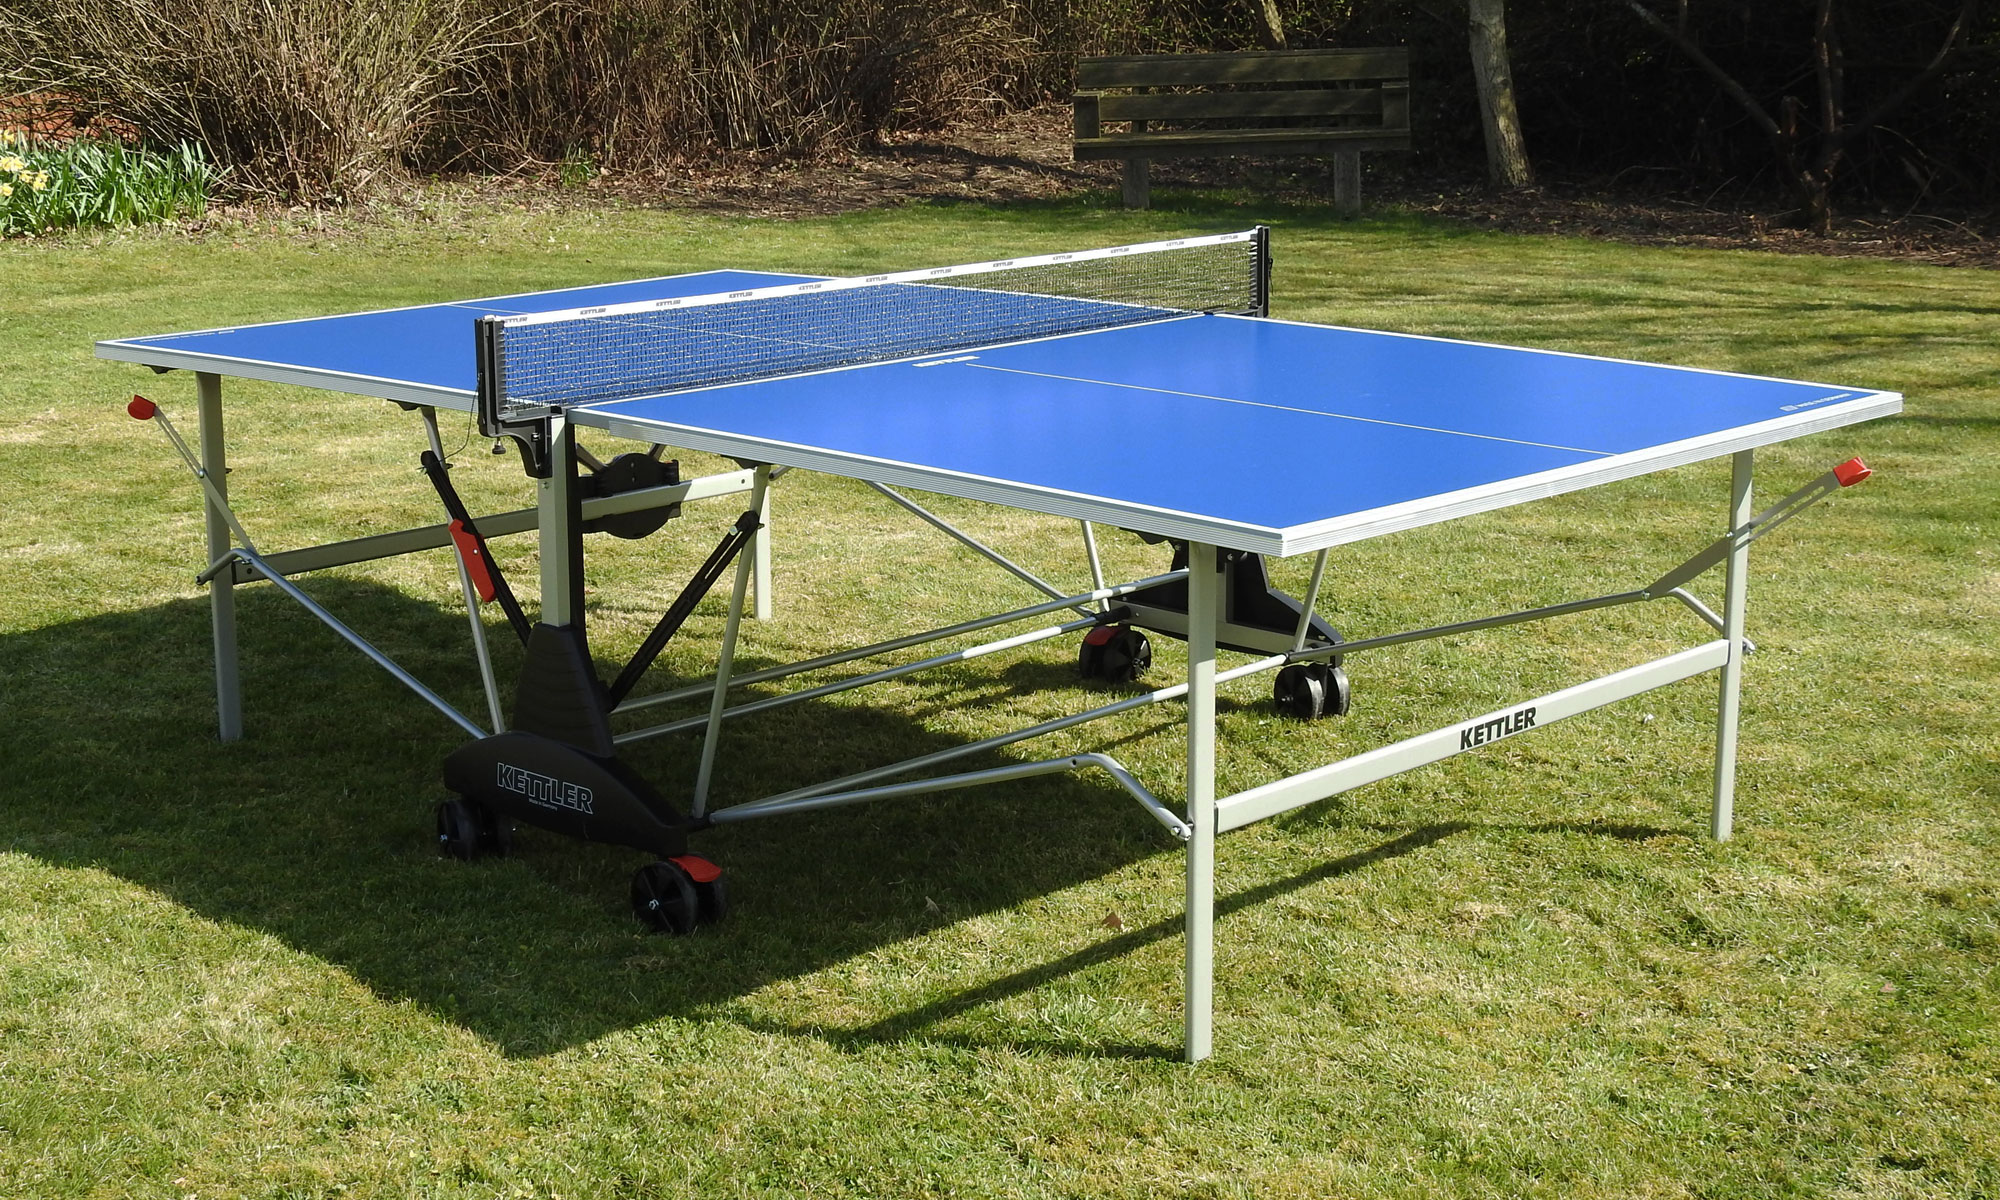 kettler stockholm gt outdoor table tennis table. Black Bedroom Furniture Sets. Home Design Ideas